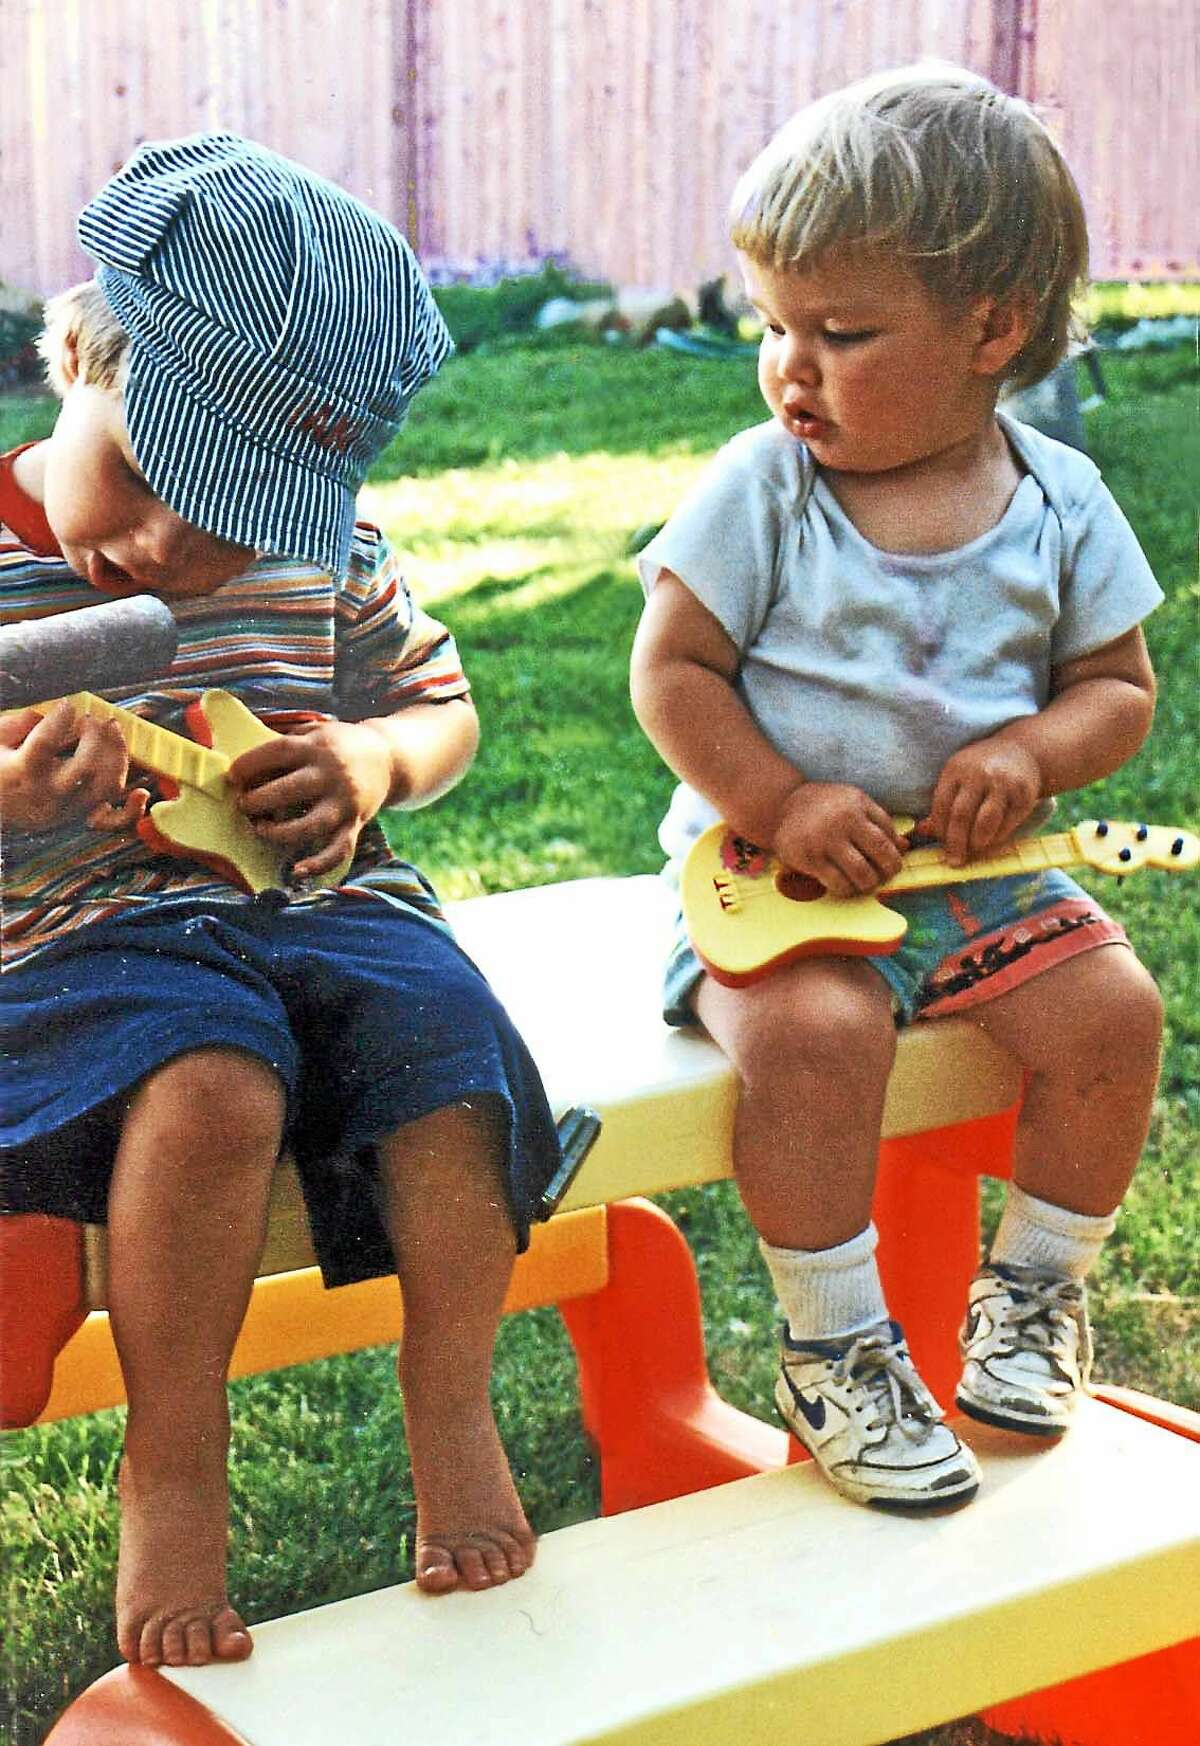 Ian and Dustin Meadows got an early start on their musical careers.